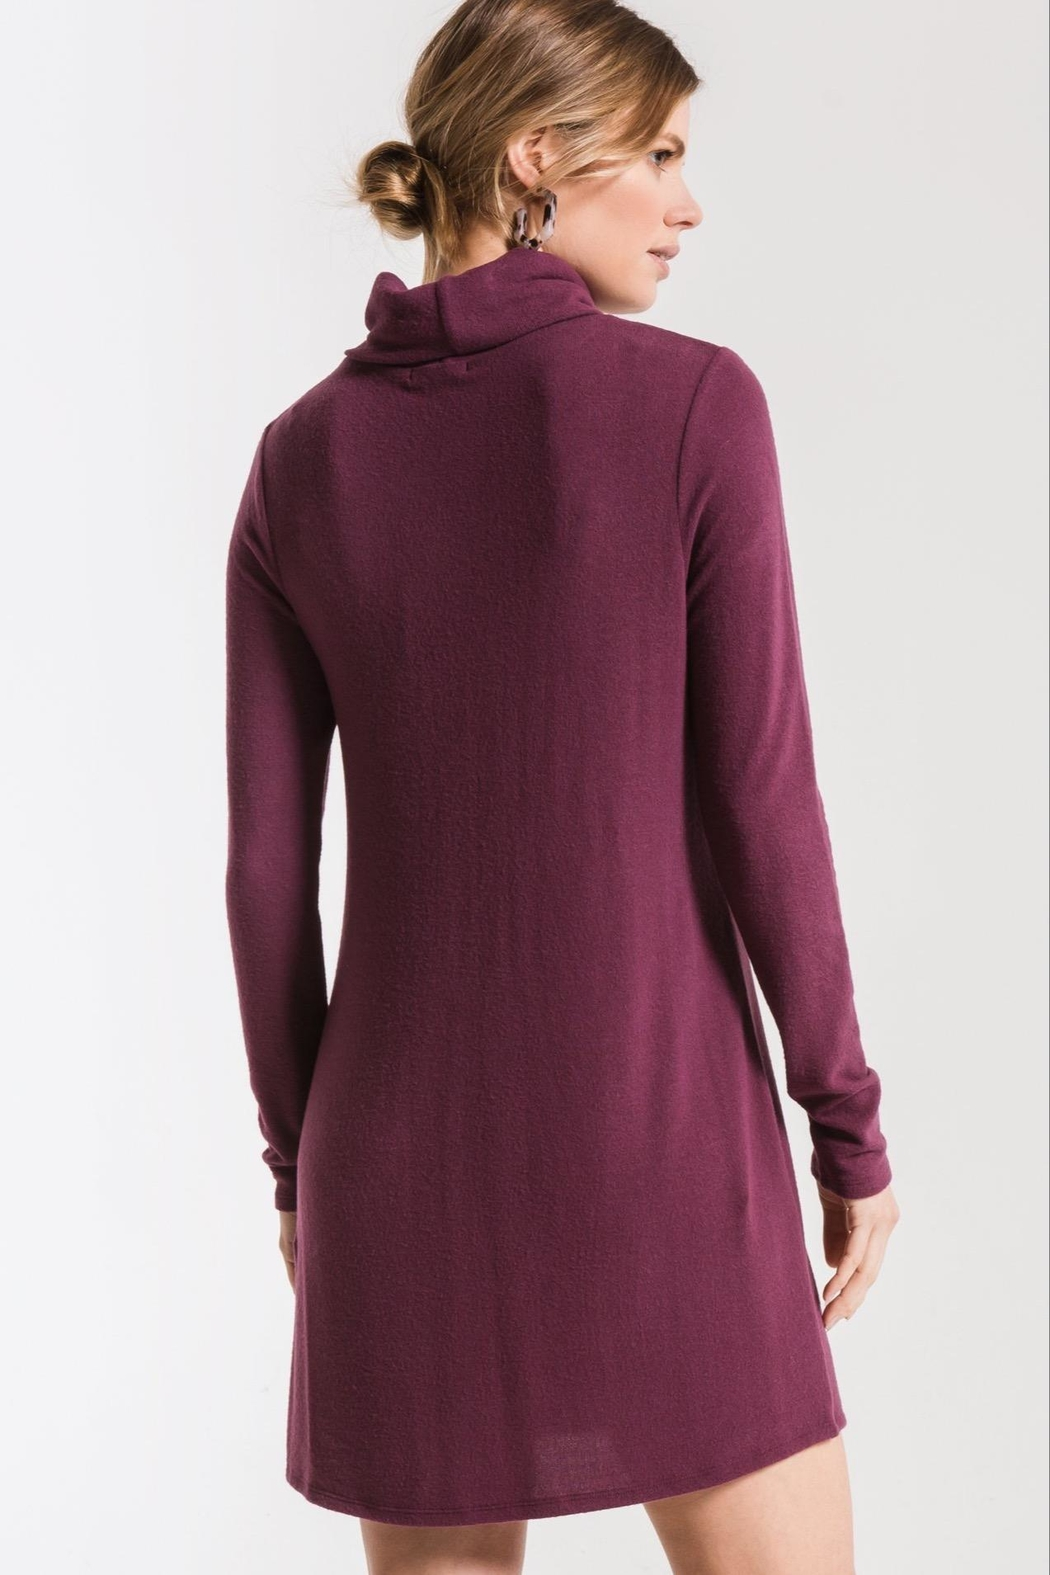 z supply Turtleneck Sweater Dress - Back Cropped Image